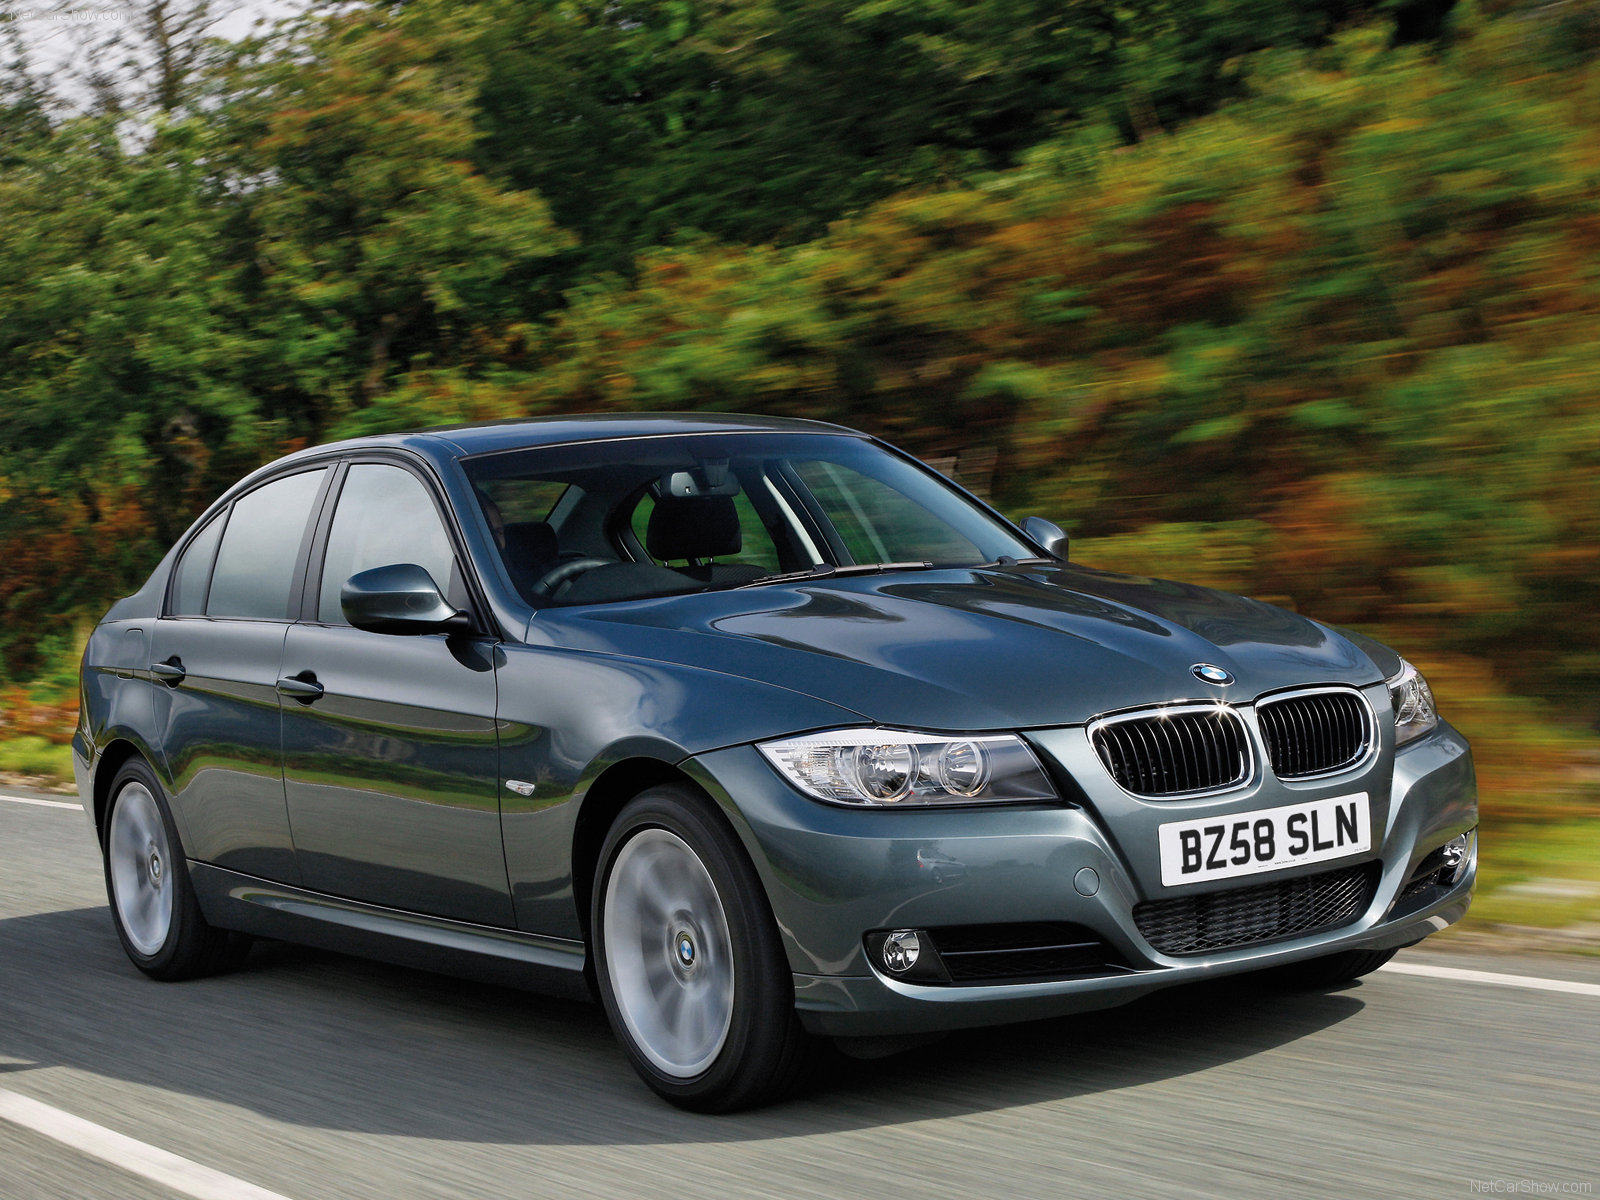 of the 2009 BMW 3 Series